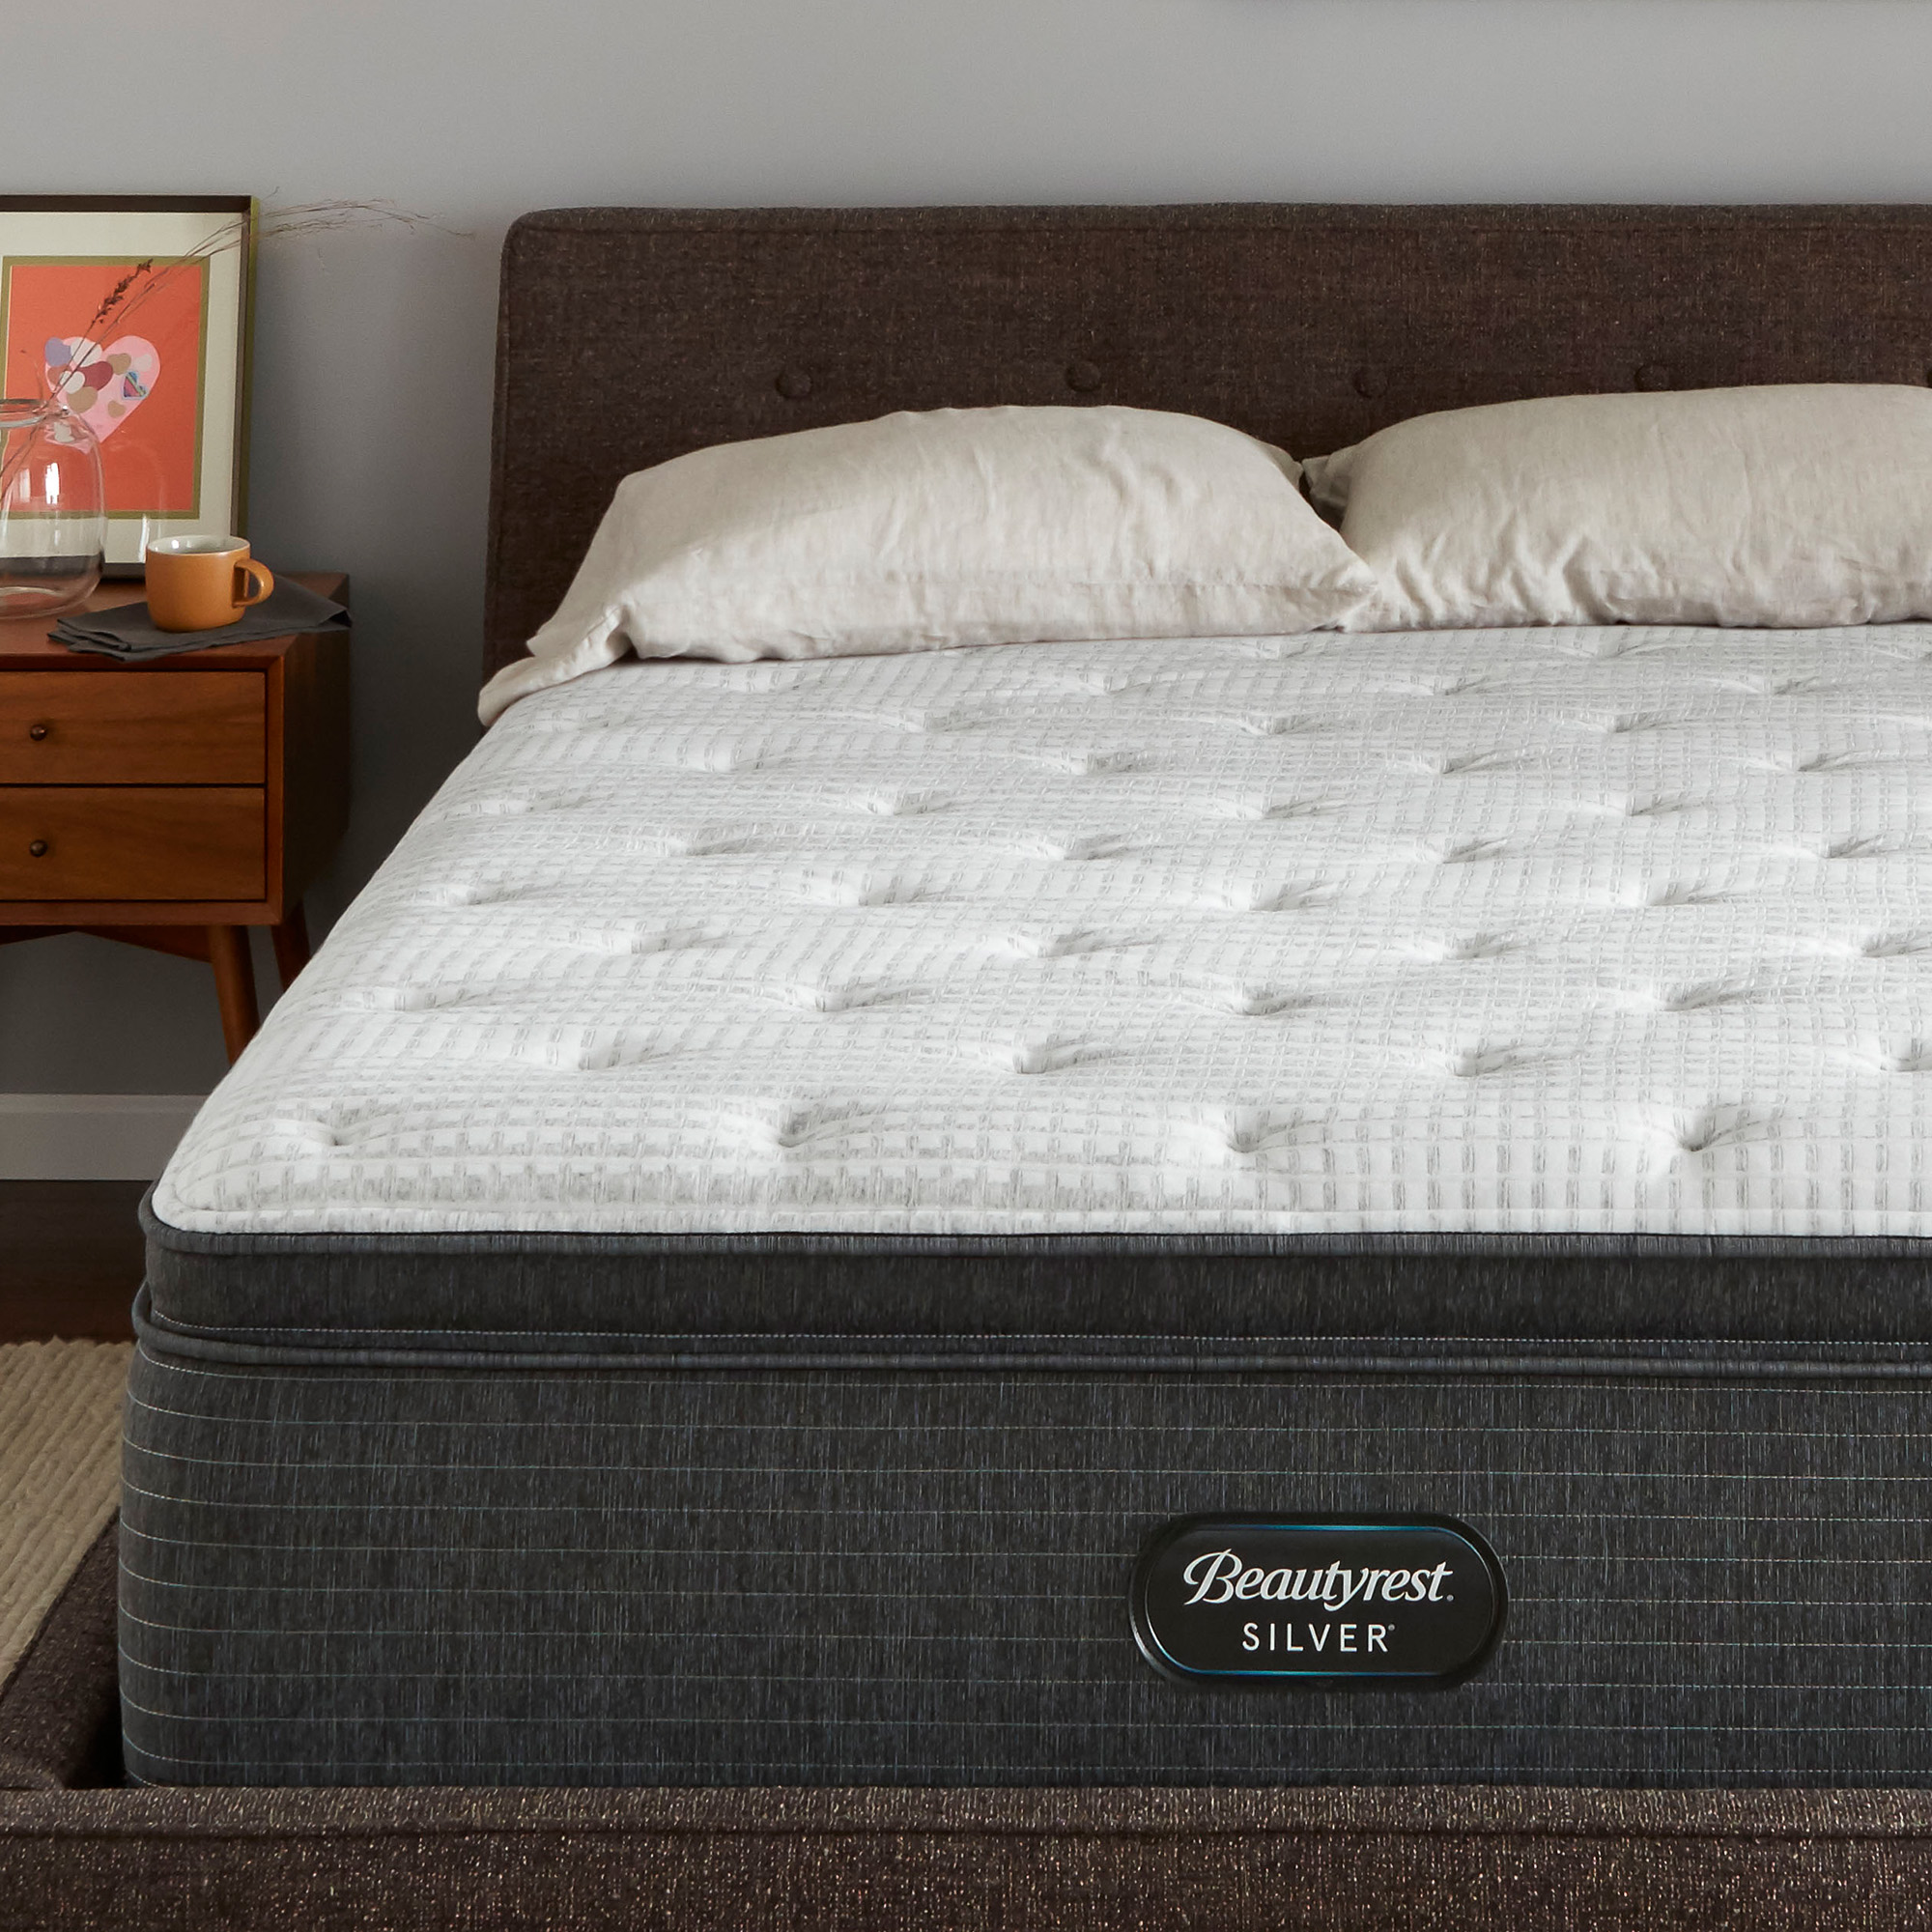 Beautyrest Silver Brs900 C Plush Pillow Top Mattress Walmart Com Walmart Com